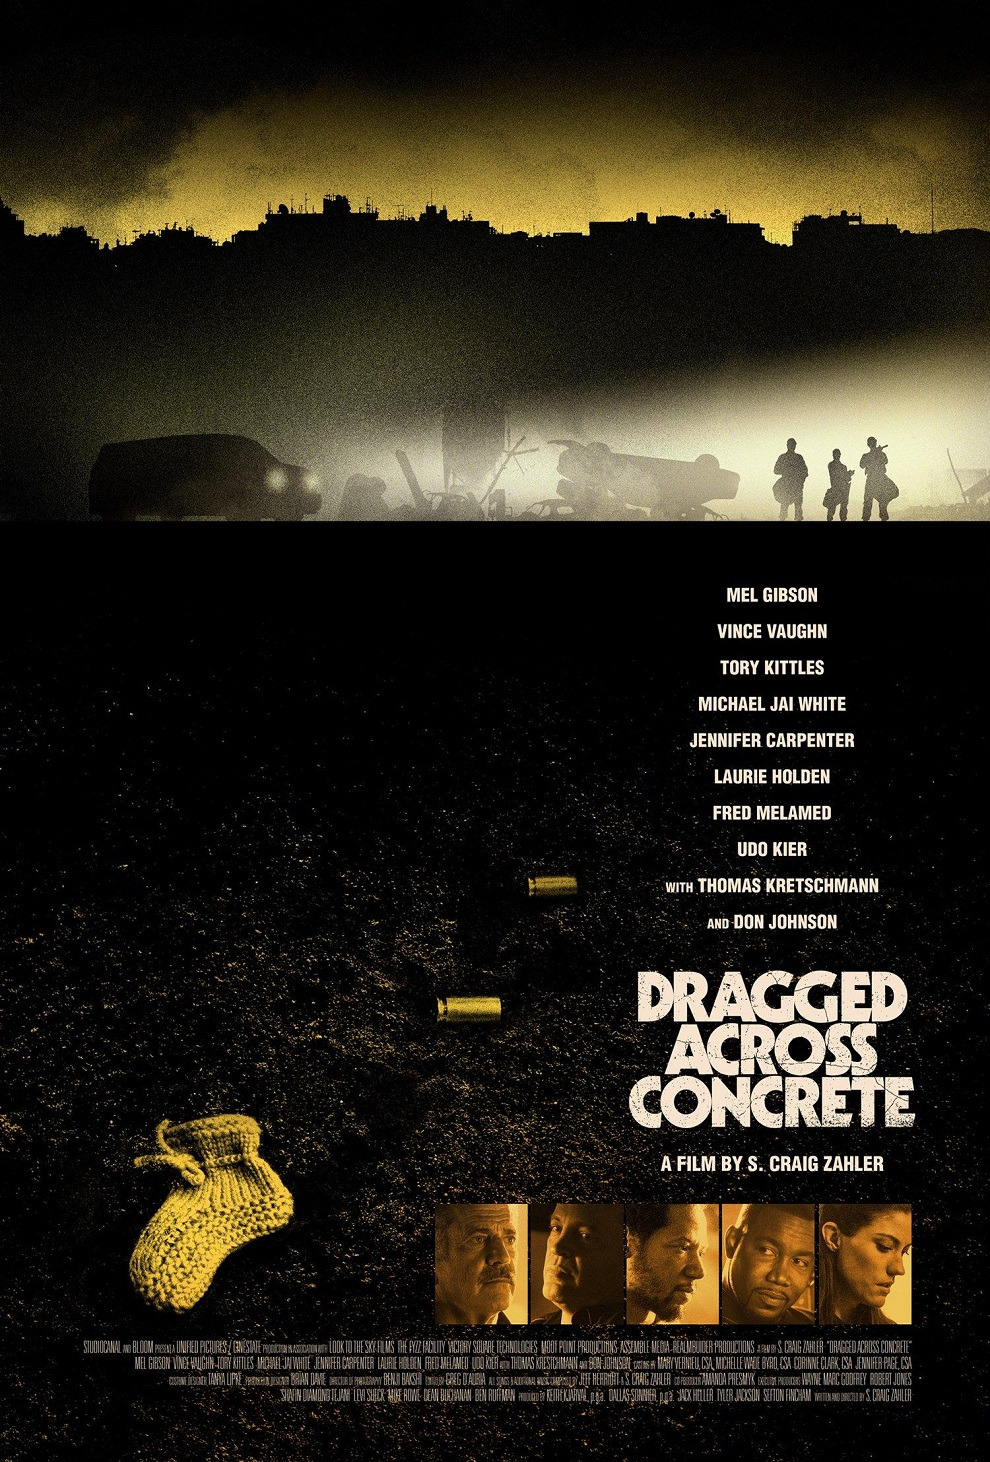 Dragged Across Concrete Trailer & Poster